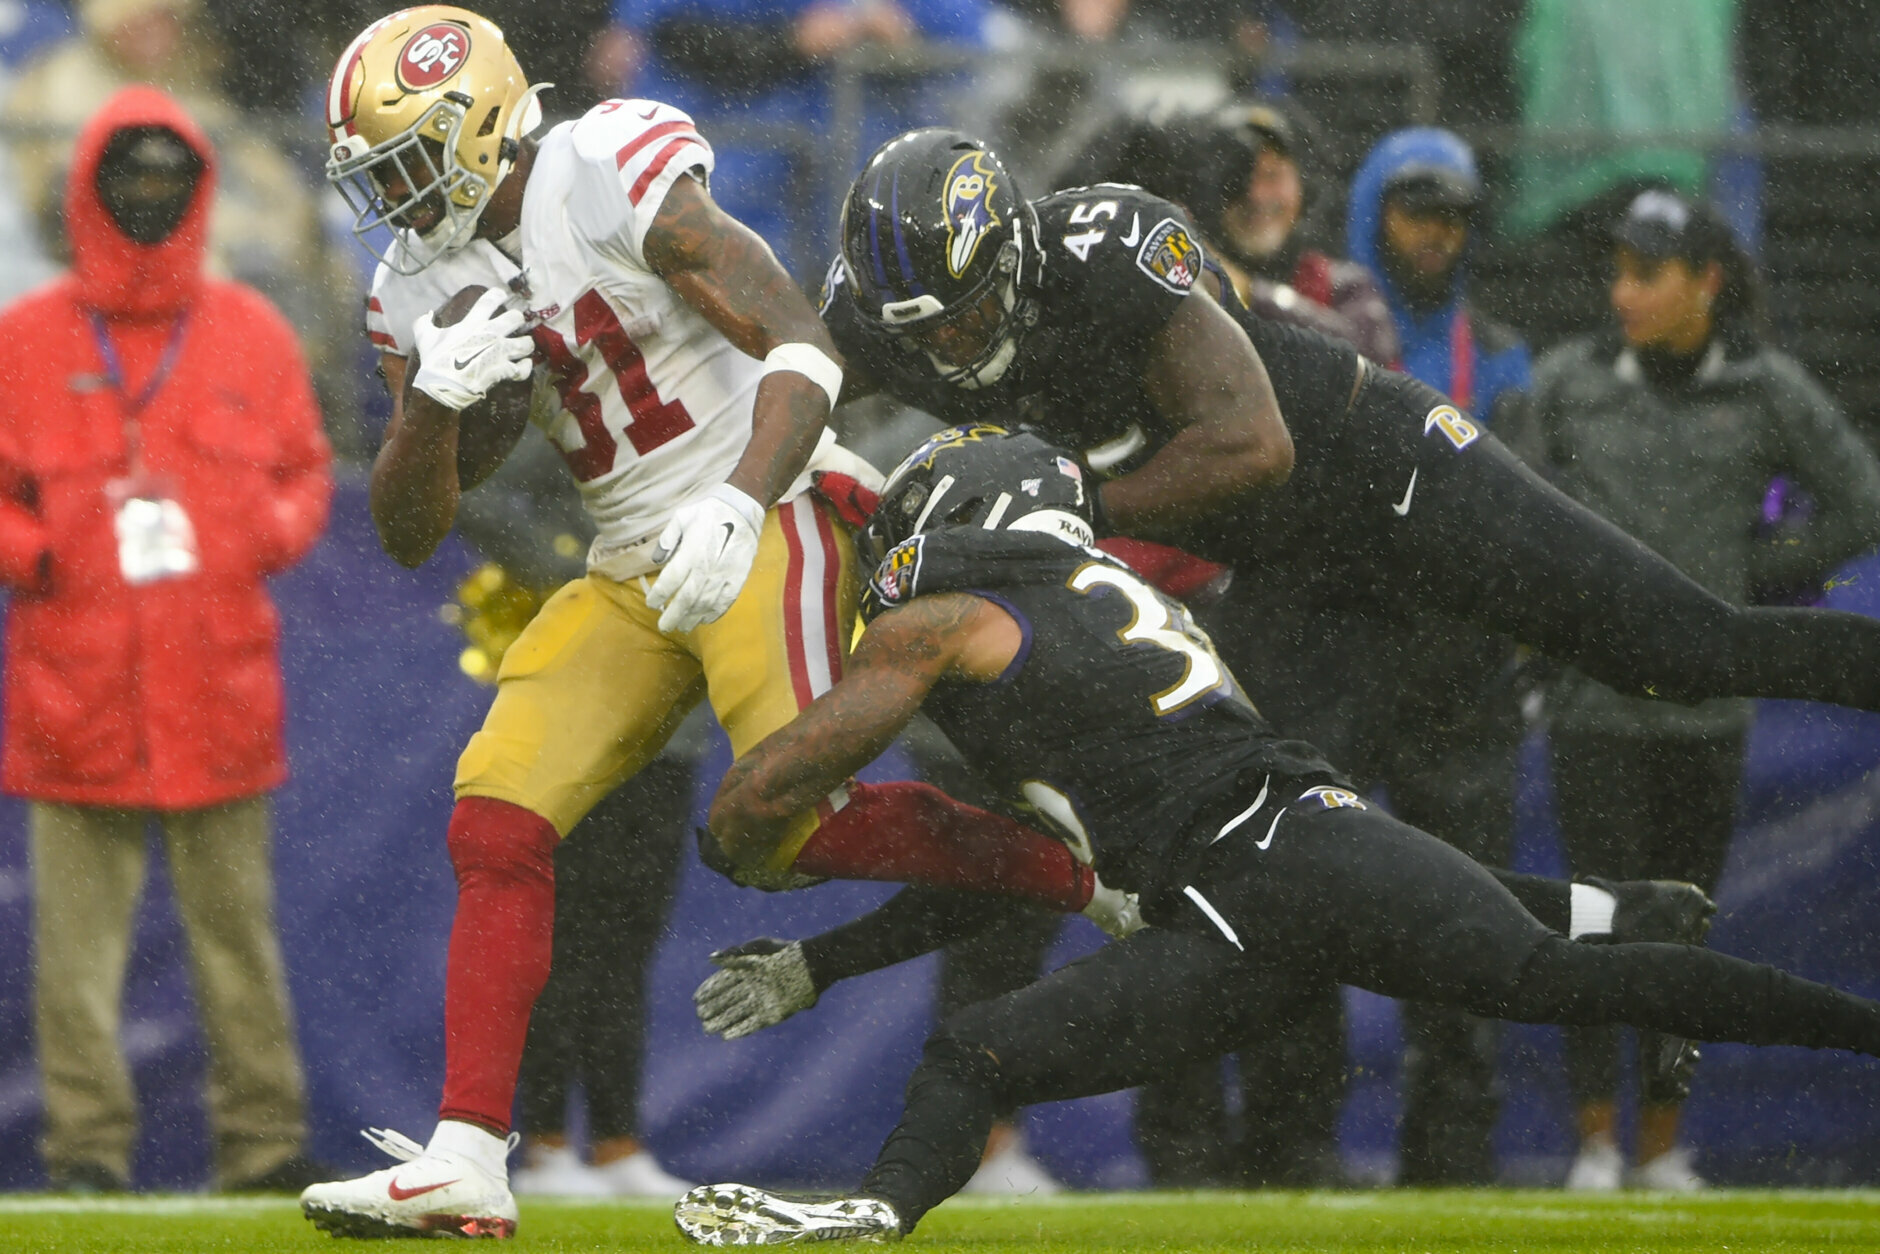 "<p>Before he ran wild <em>against</em> the Ravens in December, 49ers running back Raheem Mostert played seven games <em>for</em> the Ravens in 2015. But when Baltimore tried to release him to the practice squad, the Cleveland Browns signed him to their 53-man roster. Regardless of rooting interests, Mostert &#8212; who is on his seventh NFL roster &#8212; is <a href=""https://bleacherreport.com/articles/2873117-how-49ers-running-back-raheem-mostert-went-from-getting-cut-to-setting-records"" target=""_blank"" rel=""noopener"">an underdog story</a> people can rally around.</p>"